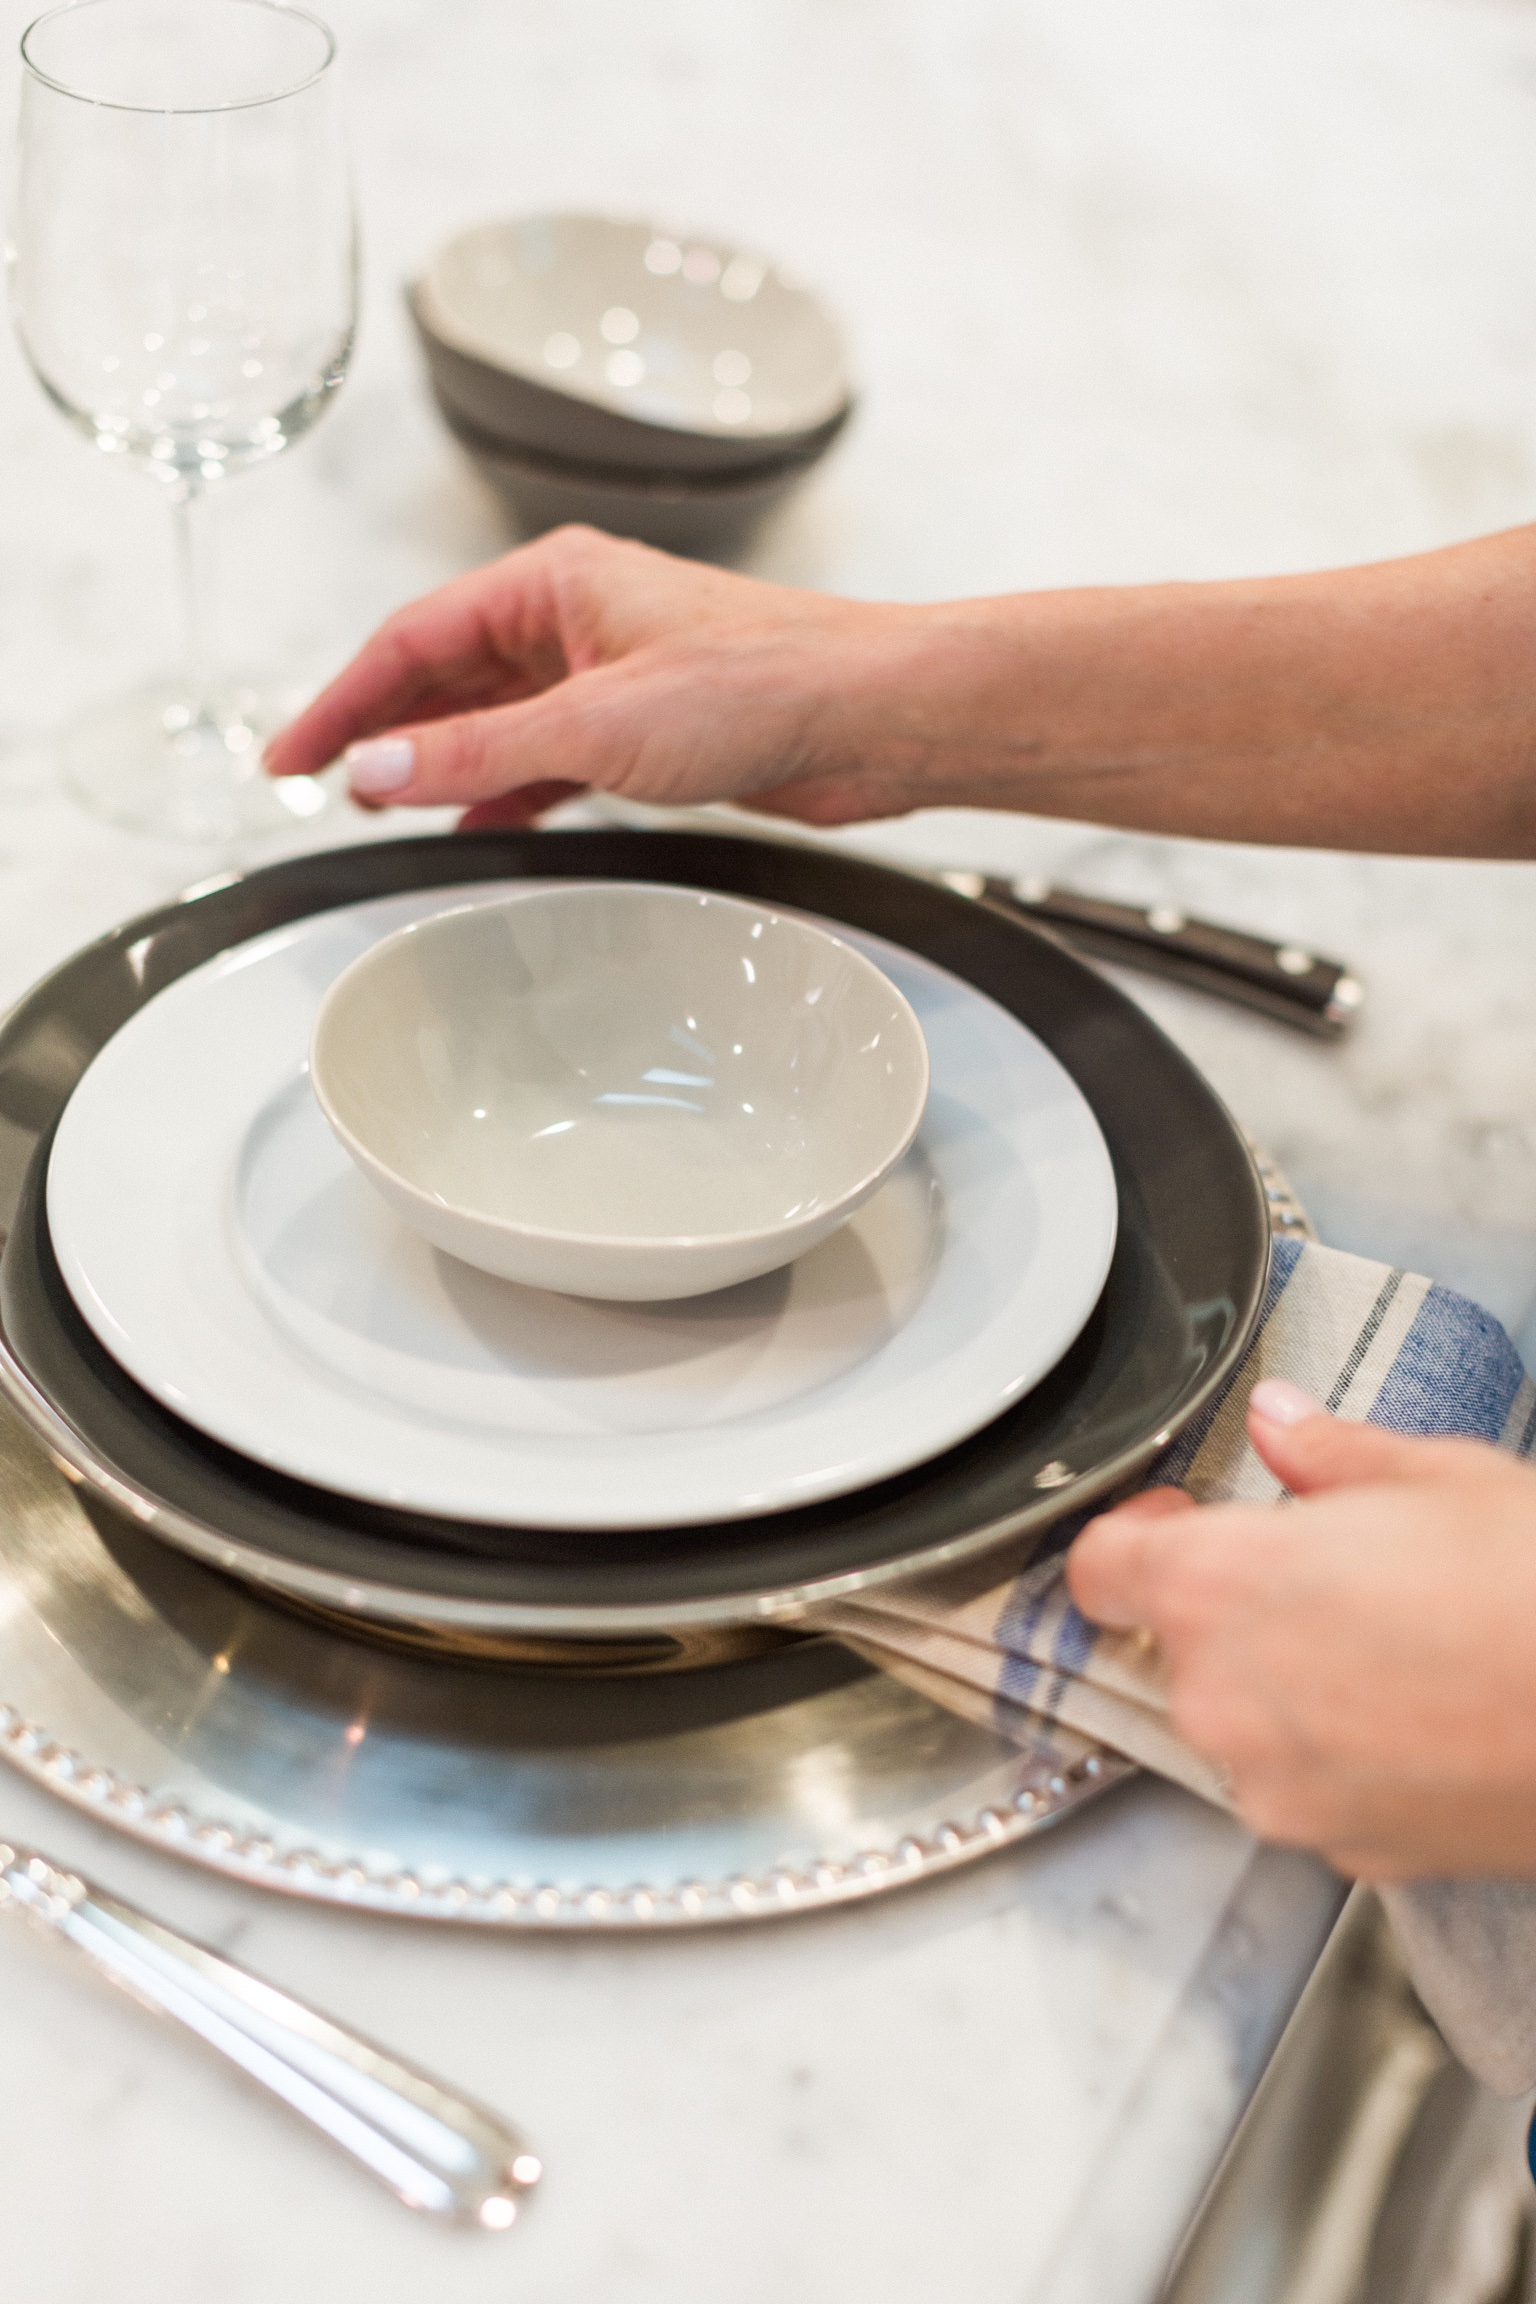 Setting the table for dinner guests